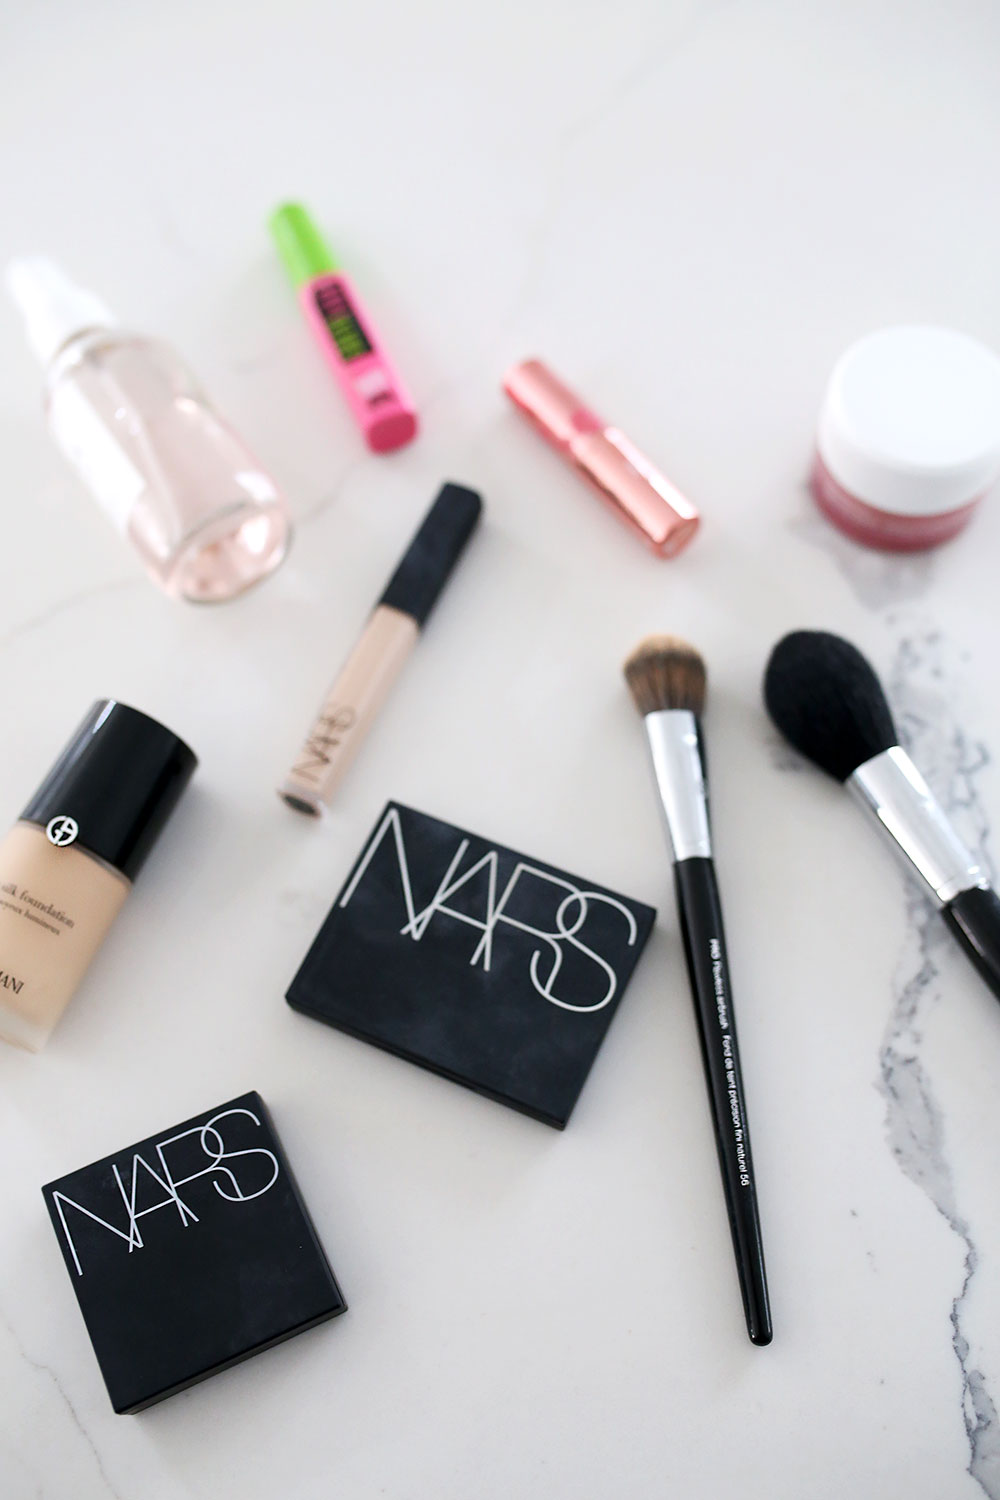 Six products and a few minutes is all it takes to create a quick everyday makeup routine for work that will leave you looking and feeling stunning. Get ready in less than 5 minutes with this quick and easy makeup routine. Everyday workout routine for work in under four minutes.